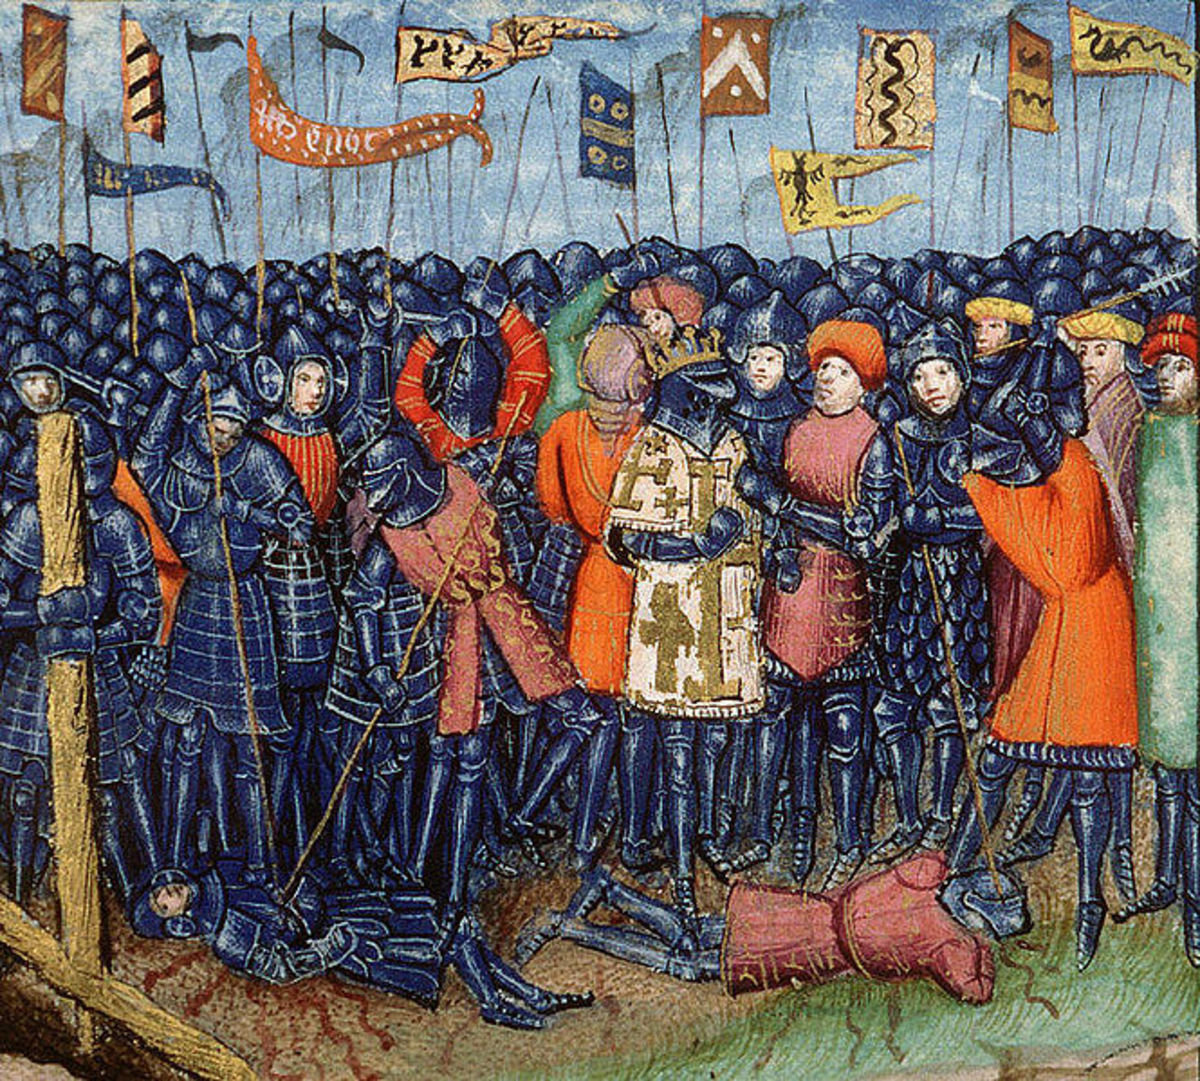 An illustration of the Battle of Hattin dating from the 15th century.